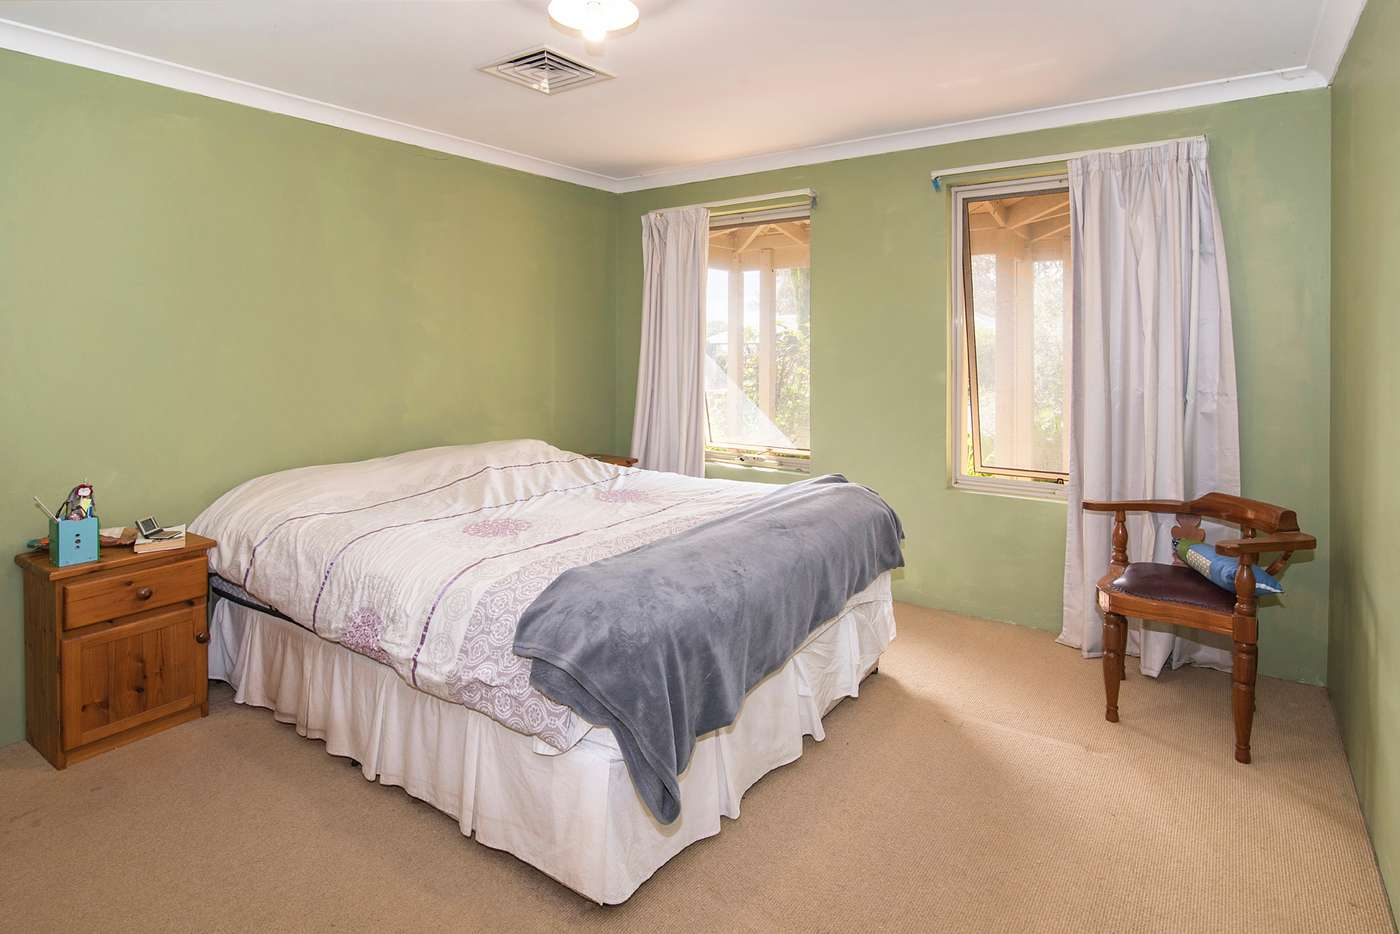 Sixth view of Homely house listing, 1 James Street, Dunsborough WA 6281